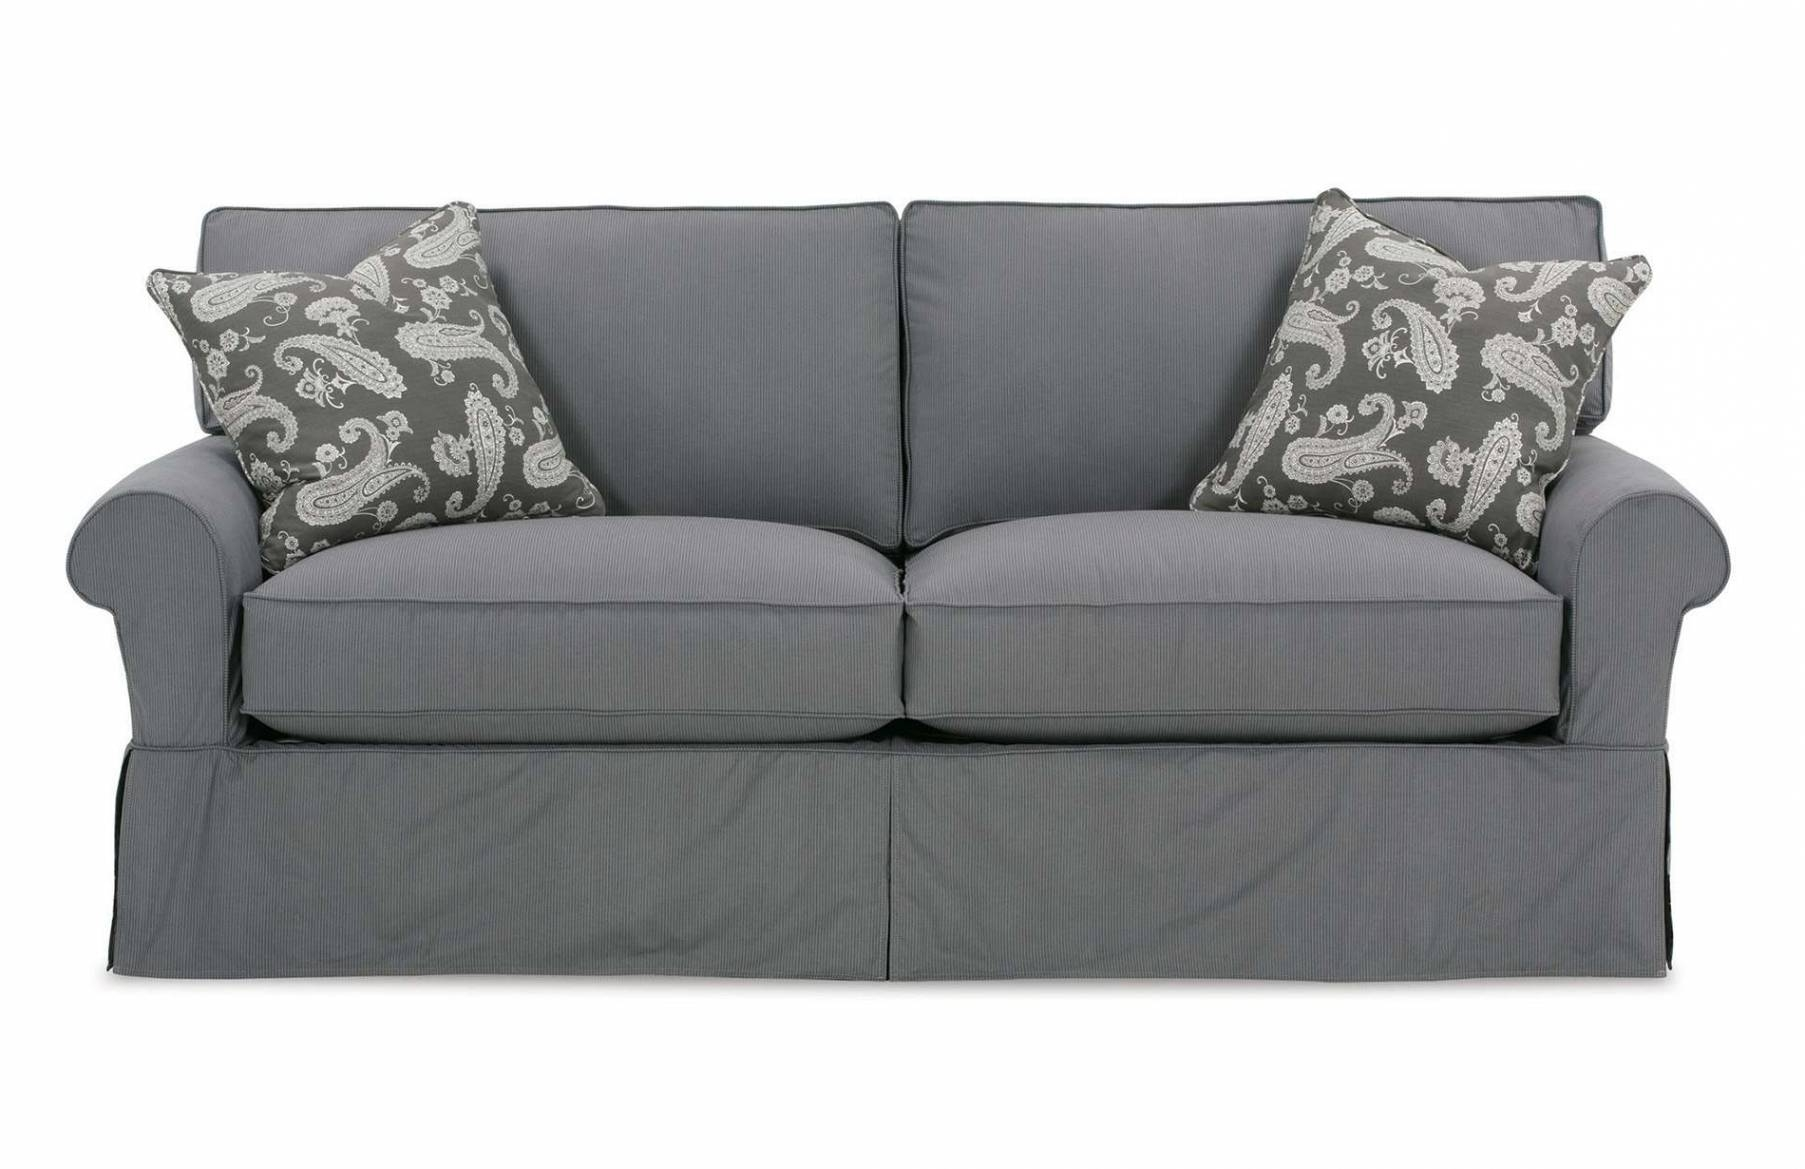 Sofa Slipcovers, Ottoman Slipcovers, Sectional Slipcovers | Rowe for Rowe Slipcovers (Image 14 of 15)